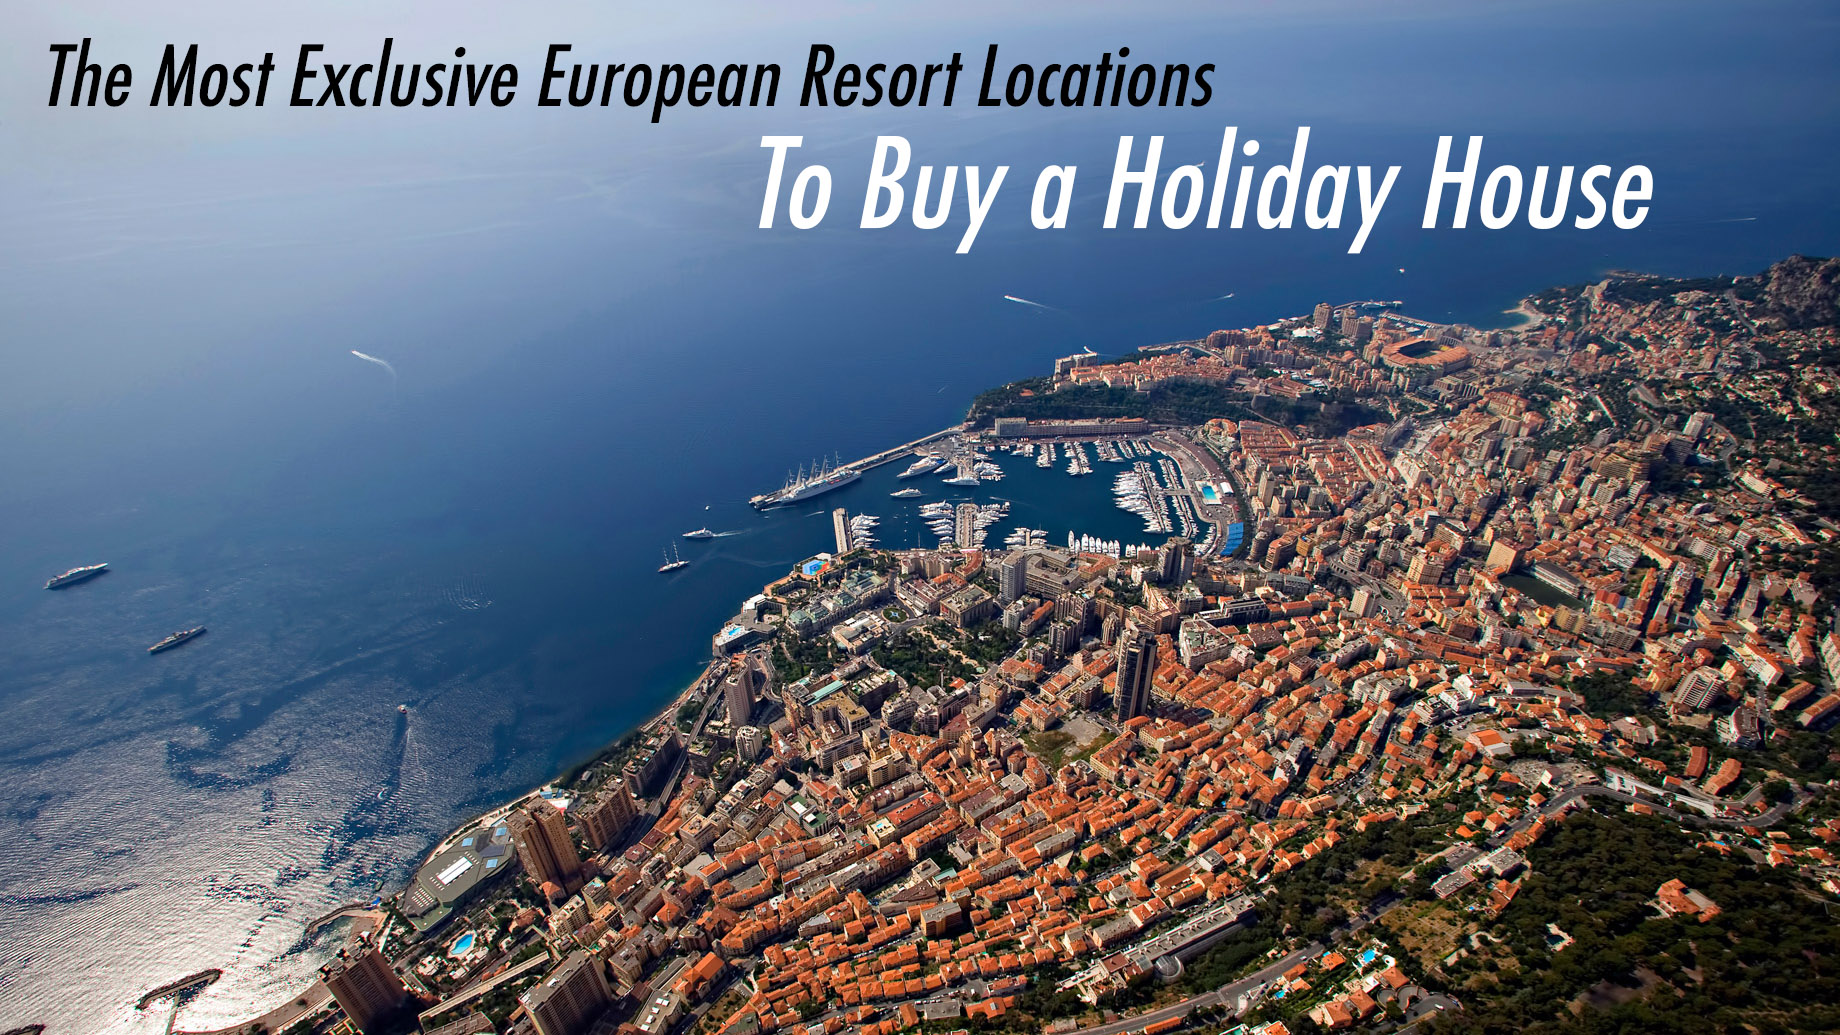 The Most Exclusive European Resort Locations to Buy a Holiday House